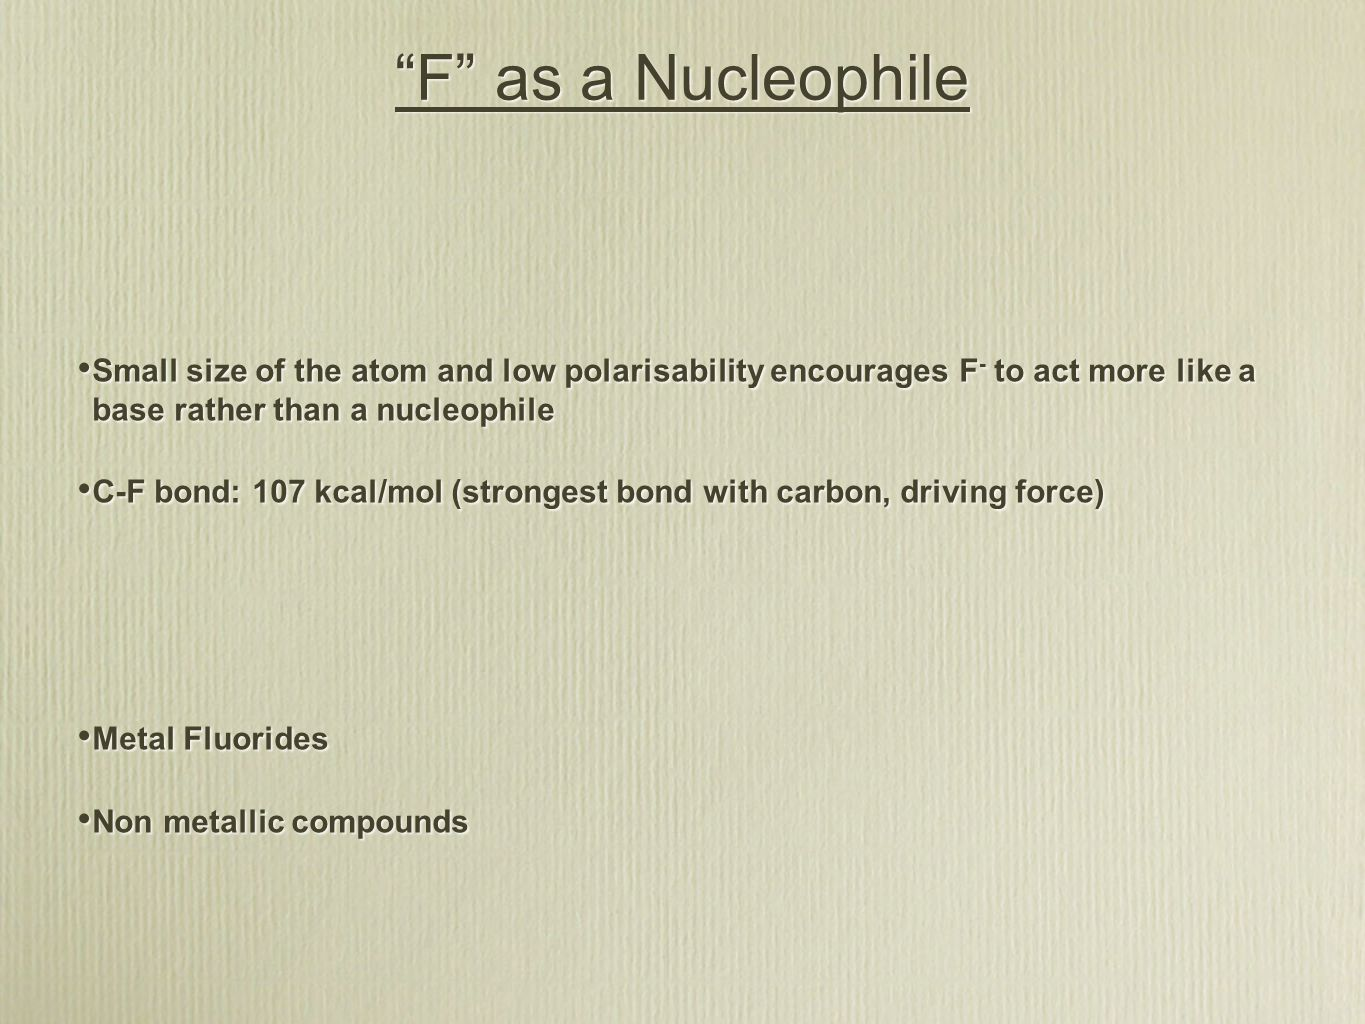 F as a Nucleophile Small size of the atom and low polarisability encourages F - to act more like a base rather than a nucleophile C-F bond: 107 kcal/mol (strongest bond with carbon, driving force) Metal Fluorides Non metallic compounds Small size of the atom and low polarisability encourages F - to act more like a base rather than a nucleophile C-F bond: 107 kcal/mol (strongest bond with carbon, driving force) Metal Fluorides Non metallic compounds